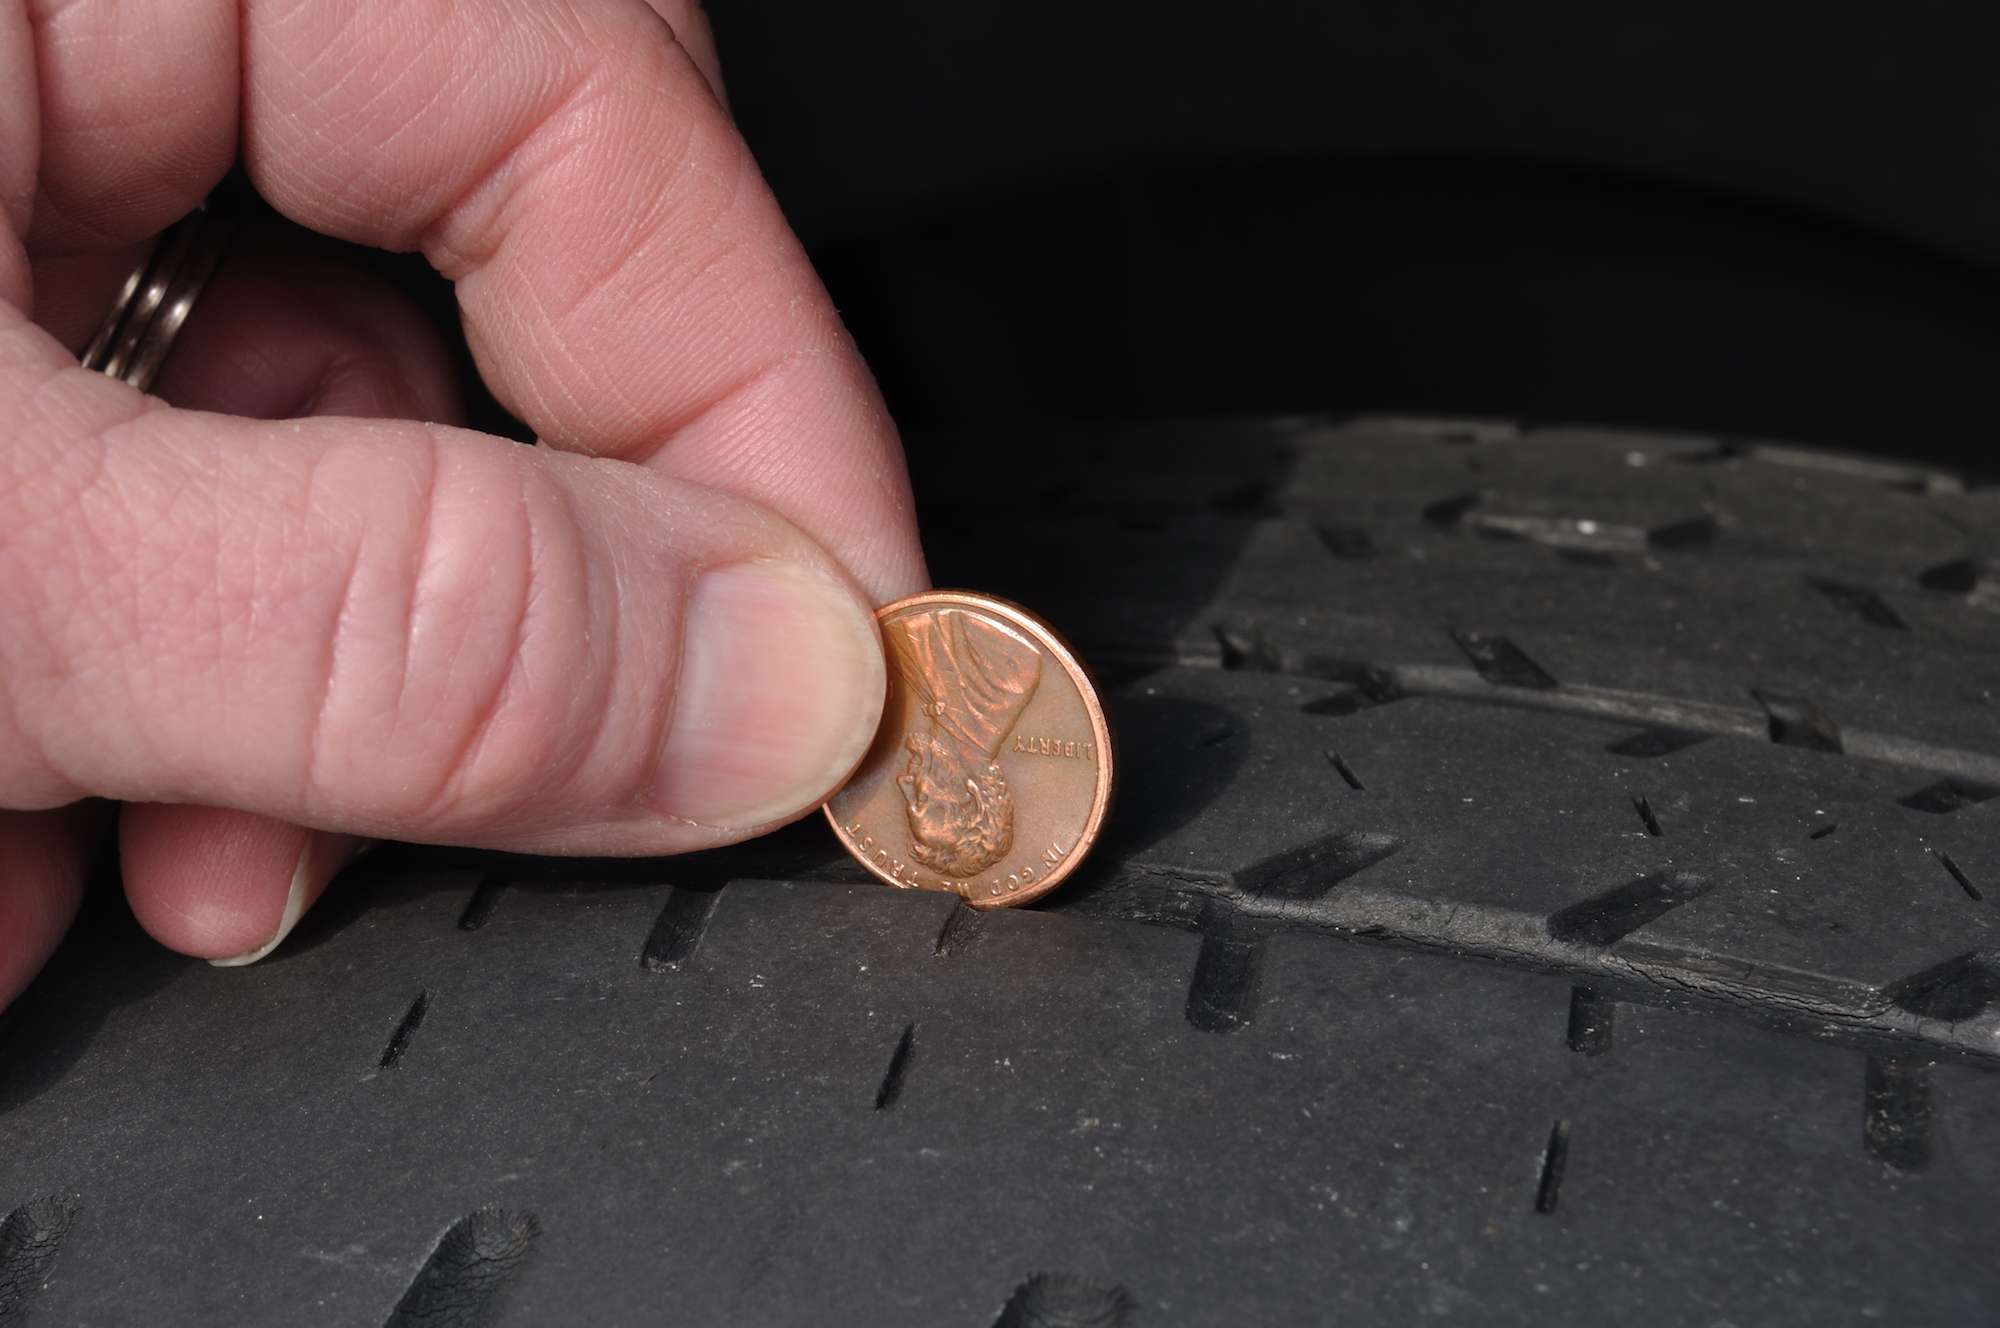 You can easily test your tire tread depth using a penny.